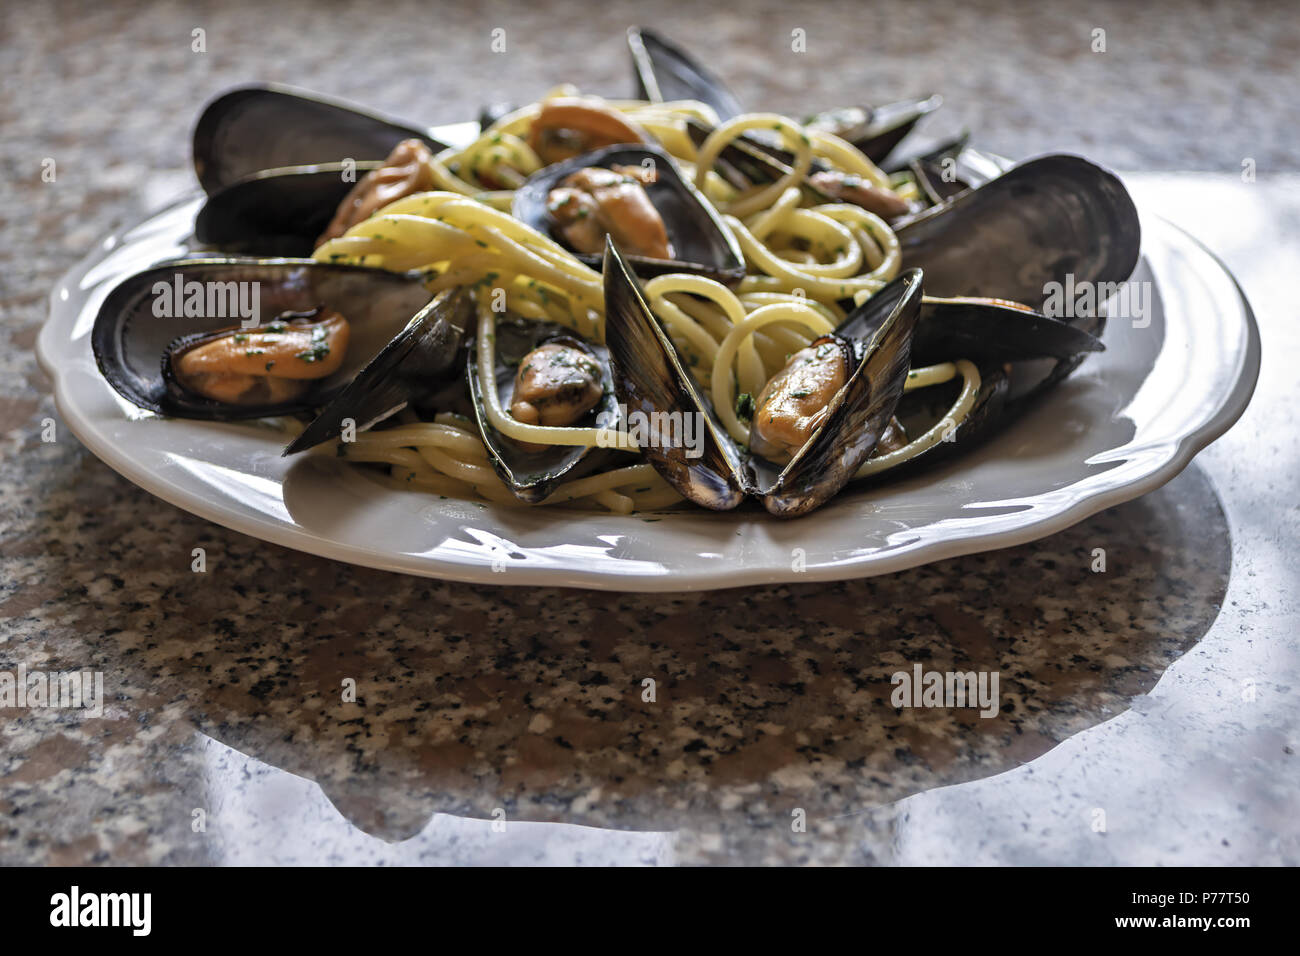 spaghetti pasta with mussels garlic and parsley 4 - Stock Image